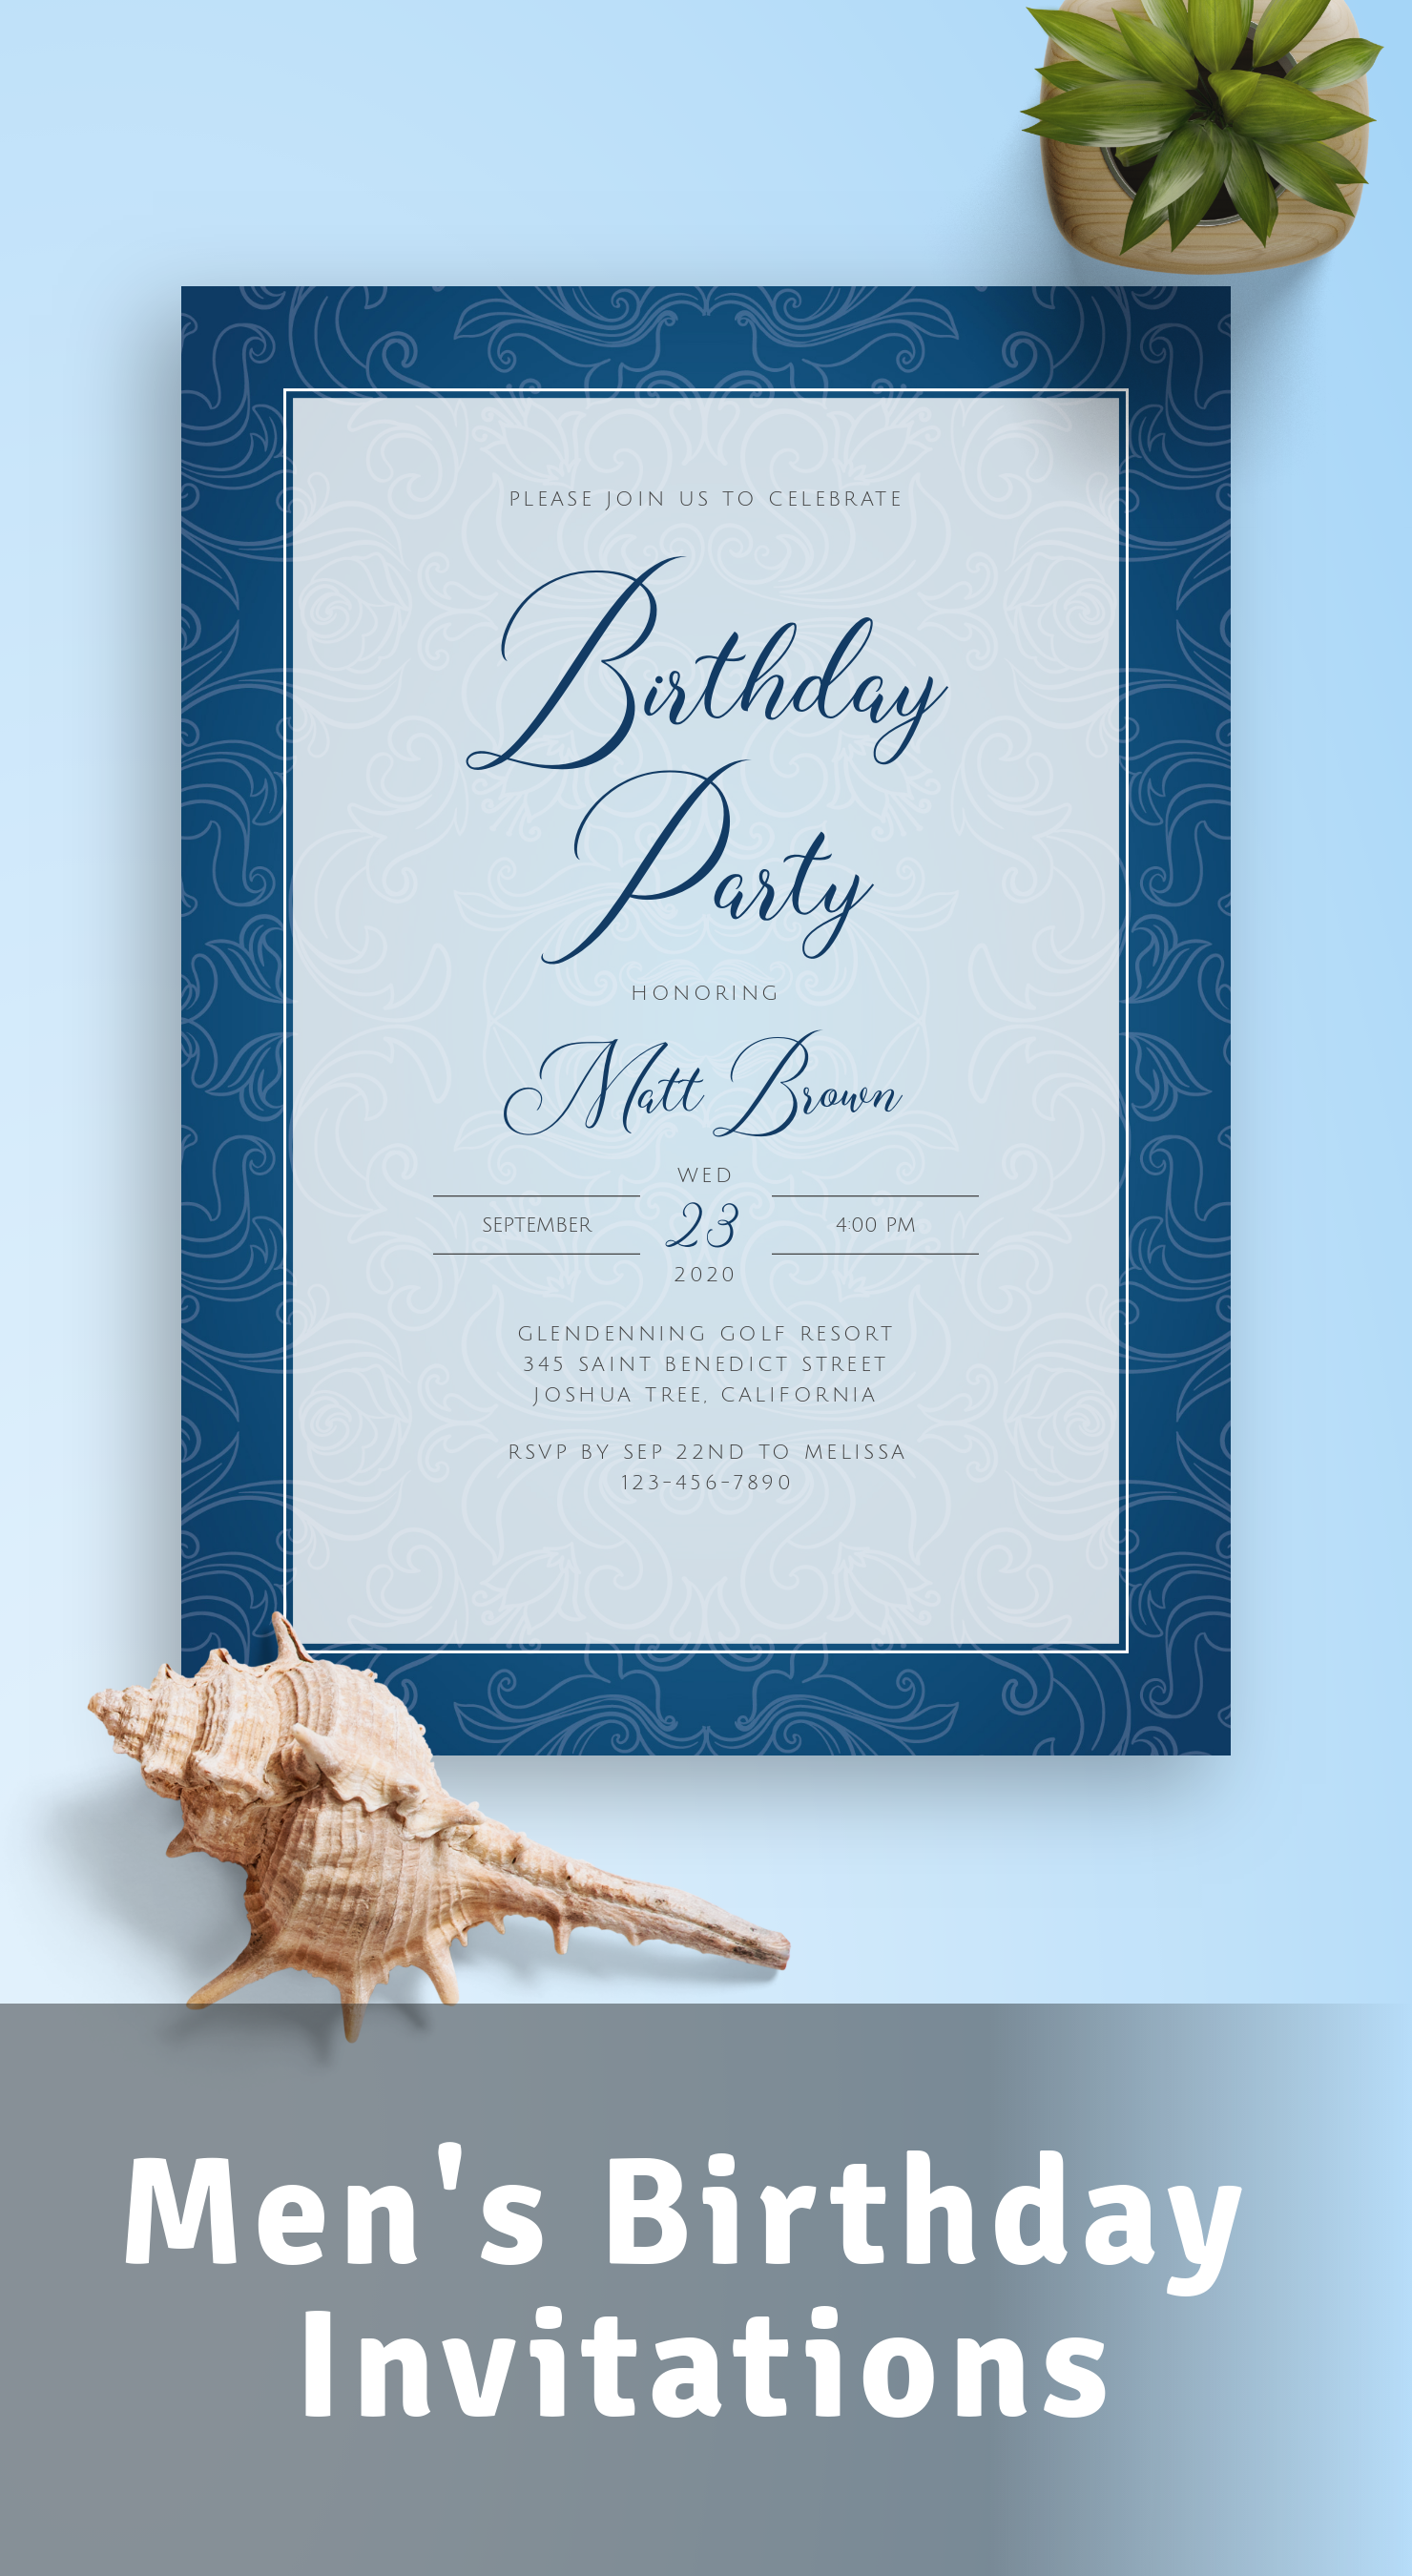 Men's Birthday Invitations